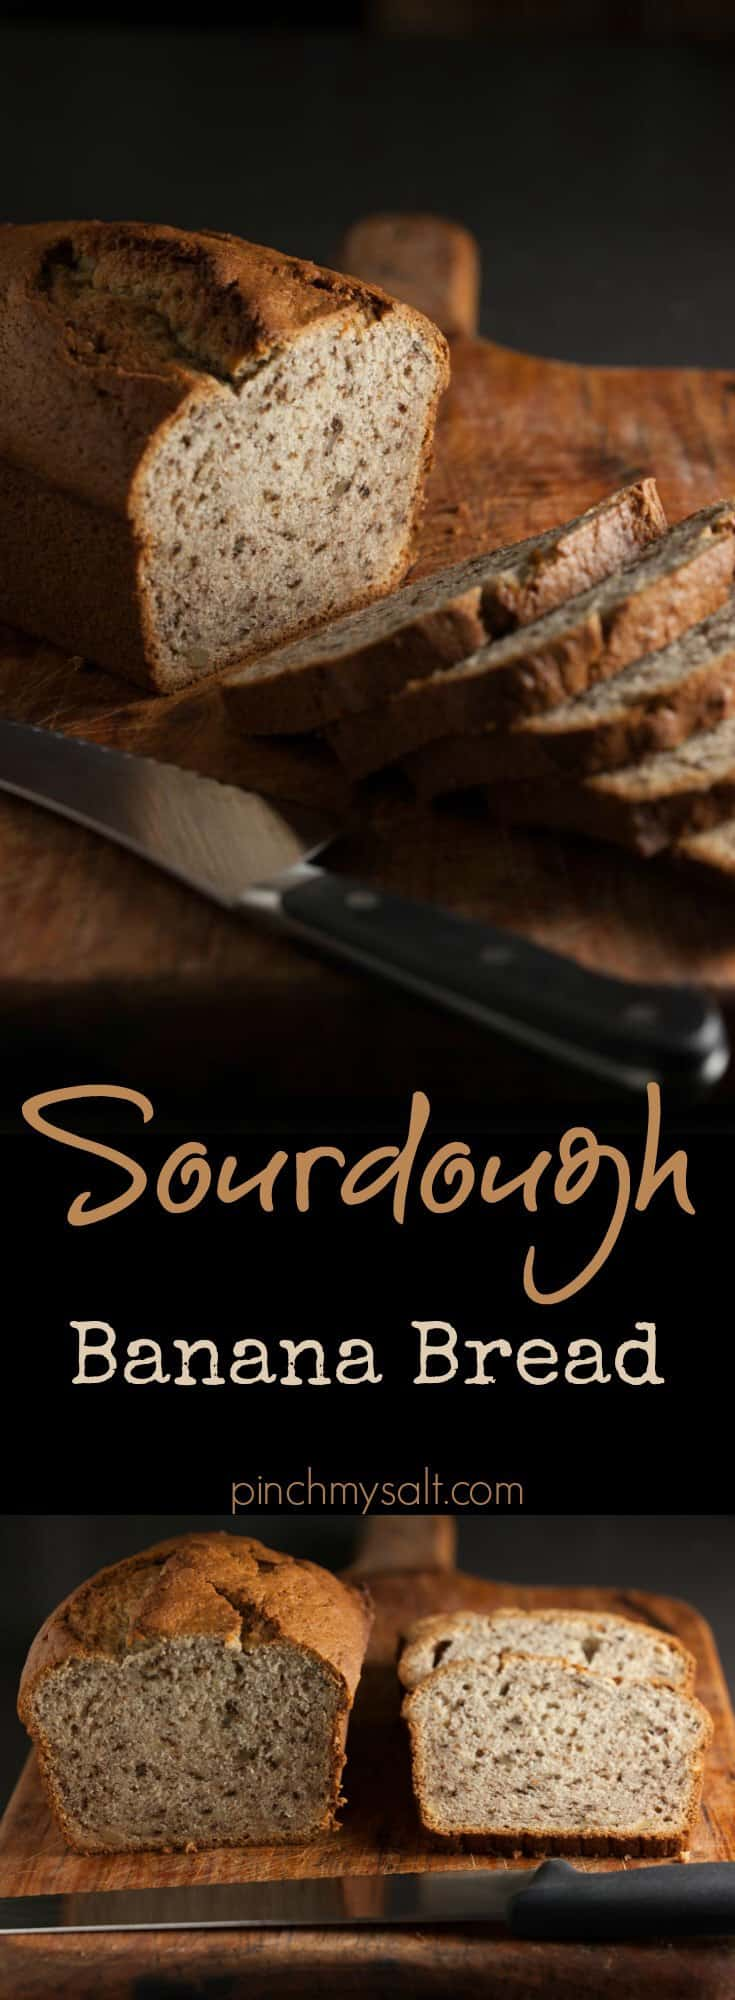 Sourdough Banana Bread Recipe | pinchmysalt.com